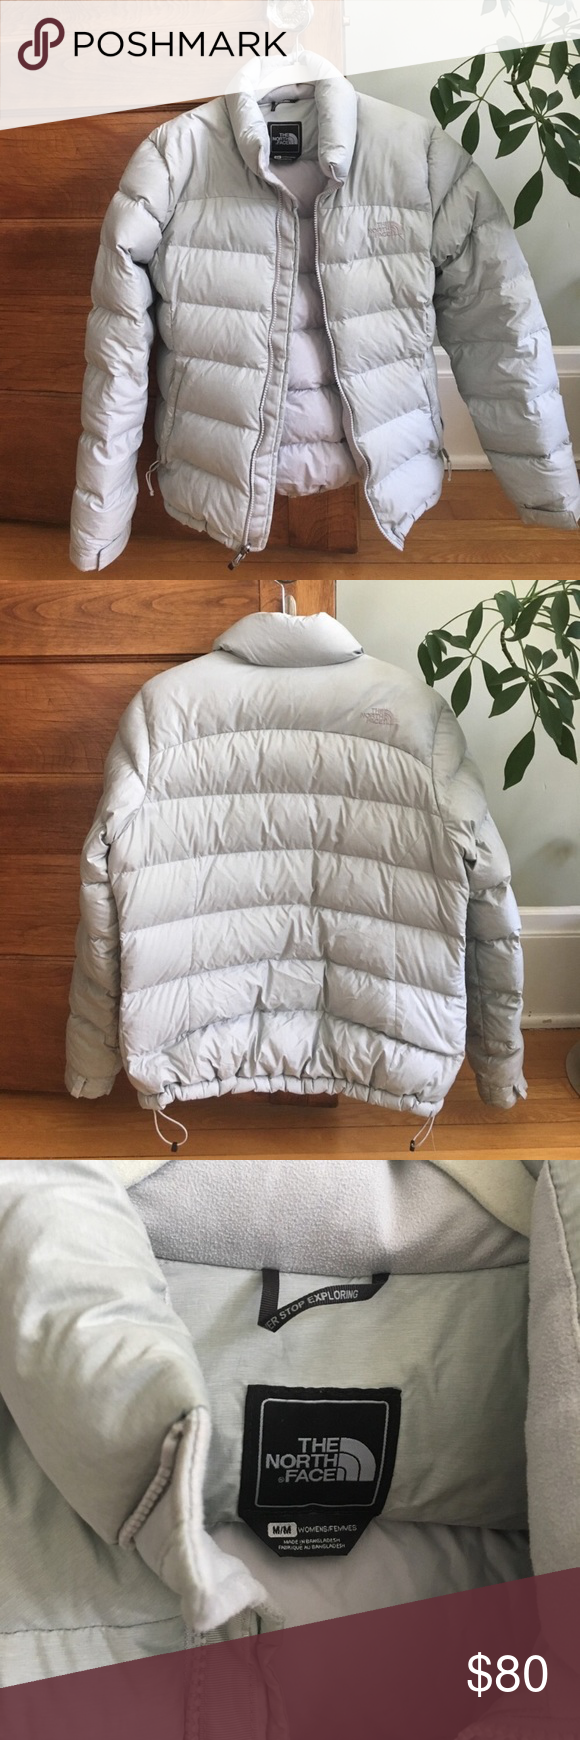 North Face light grey down jacket sz M Good used condition, only worn a few times! Selling because a little big for me The North Face Jackets & Coats Puffers